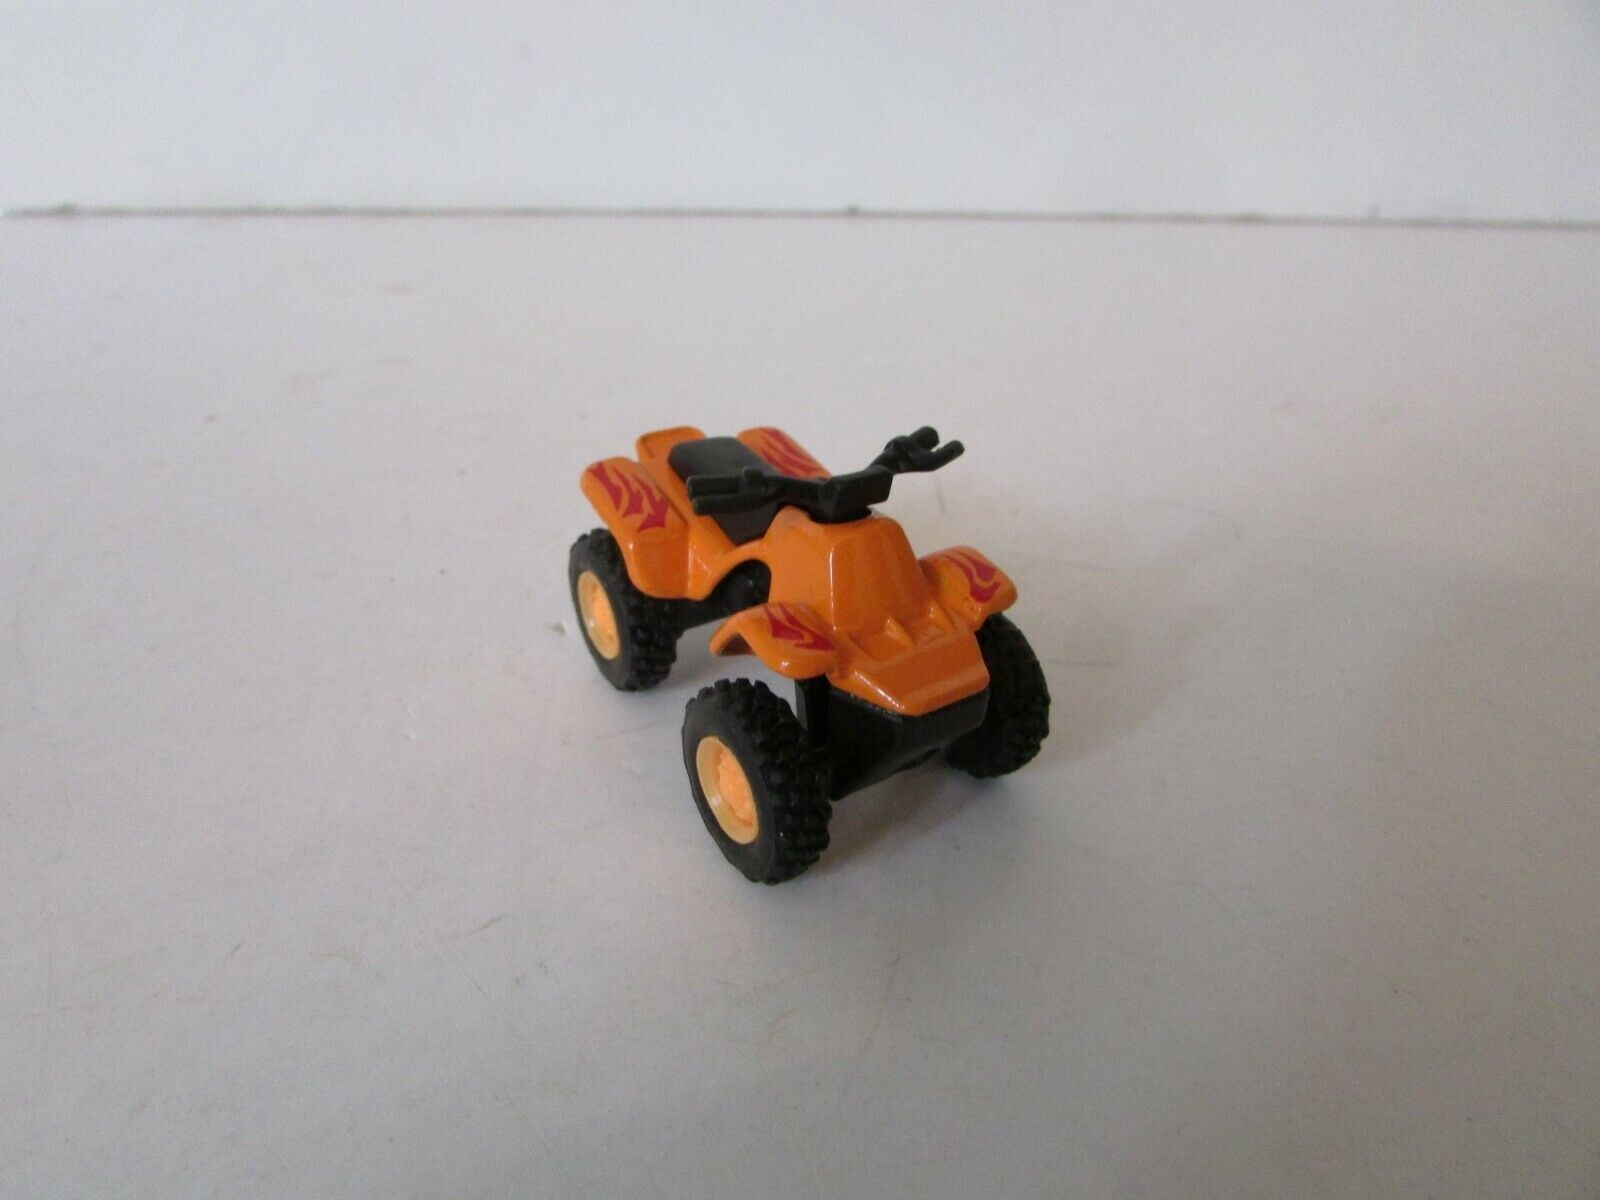 Maisto 1957 Chevrolet Racing Car Sports Vehicles 1//64 Scale Orange Miniature Toy